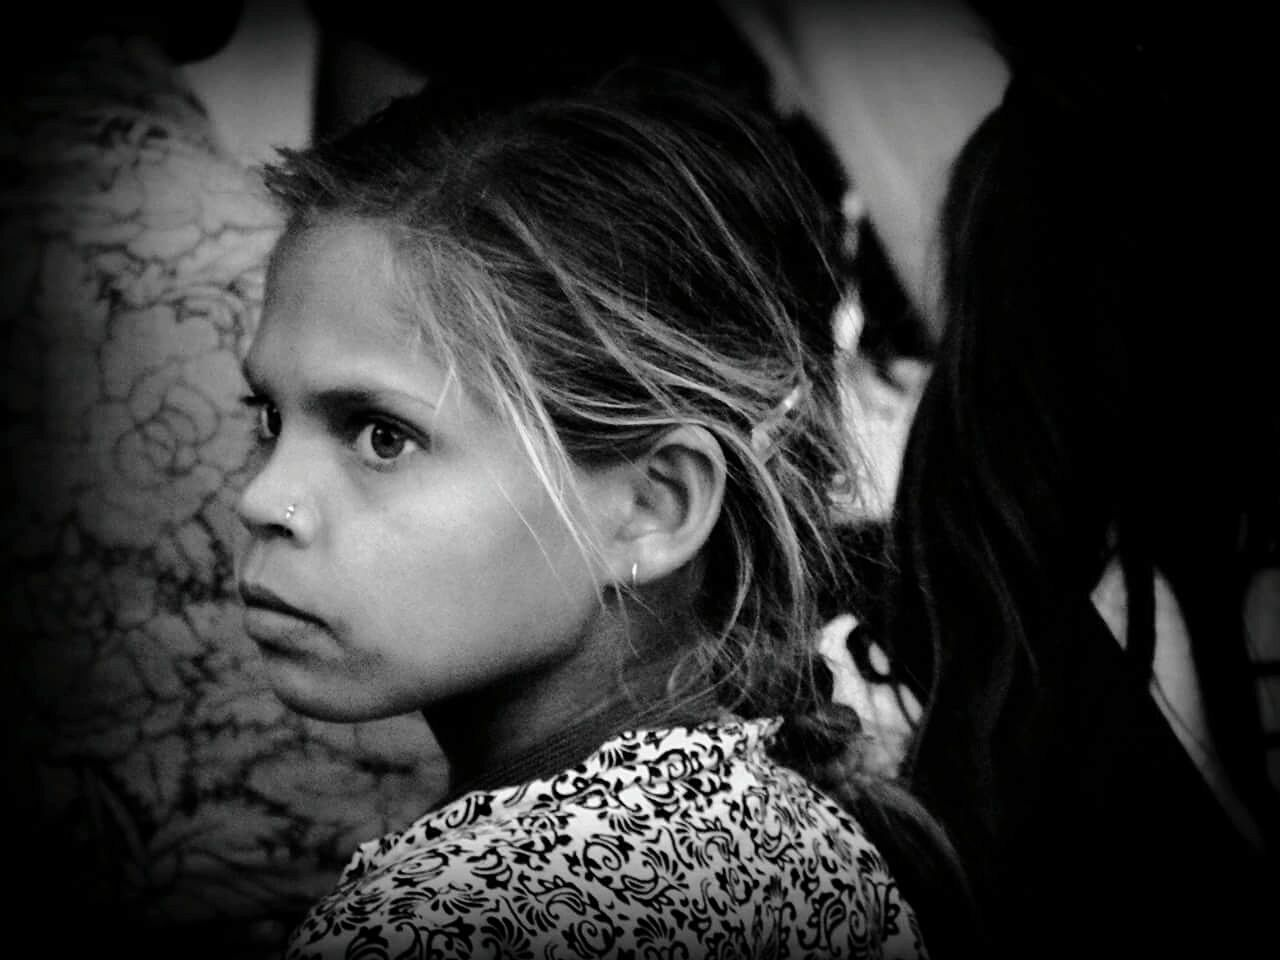 Inquisitive or Intrigued. It starts with the eyes EyeEm Best Shots Eyes Indiapictures Rural Intrepid Explorer Intrepidtravel Inquisitive Curious Intriguing SchoolGirl Streetblackandwhite